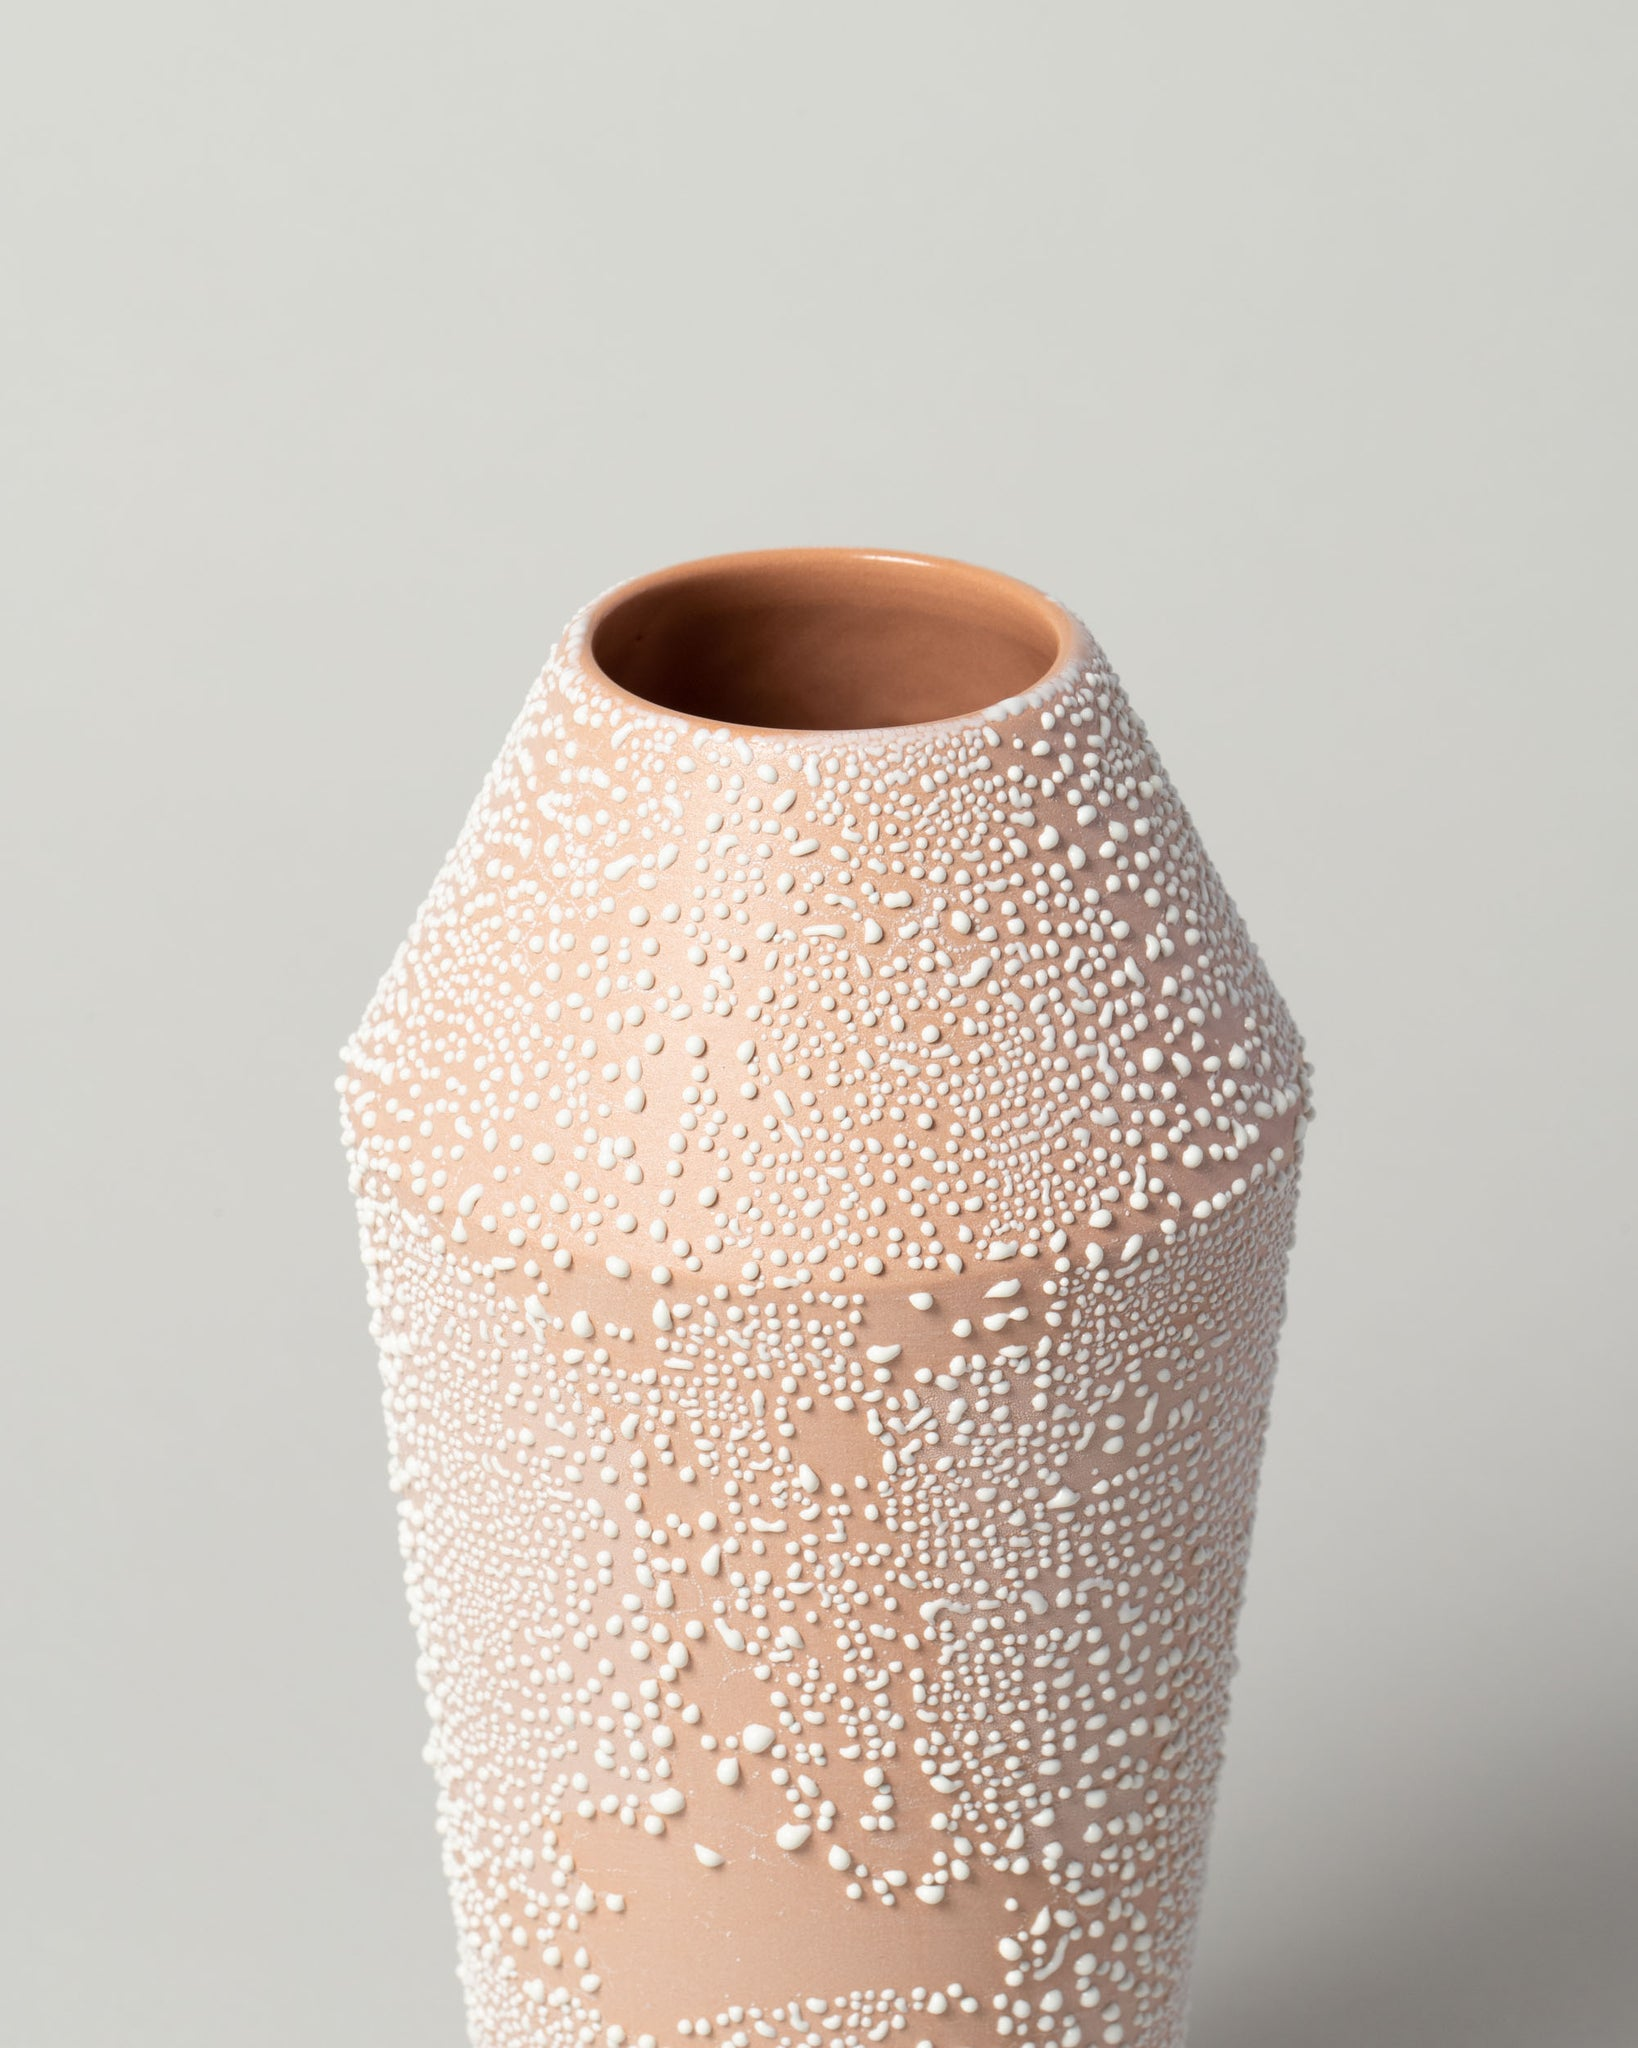 Small Dew Vessel in Terracotta Closeup